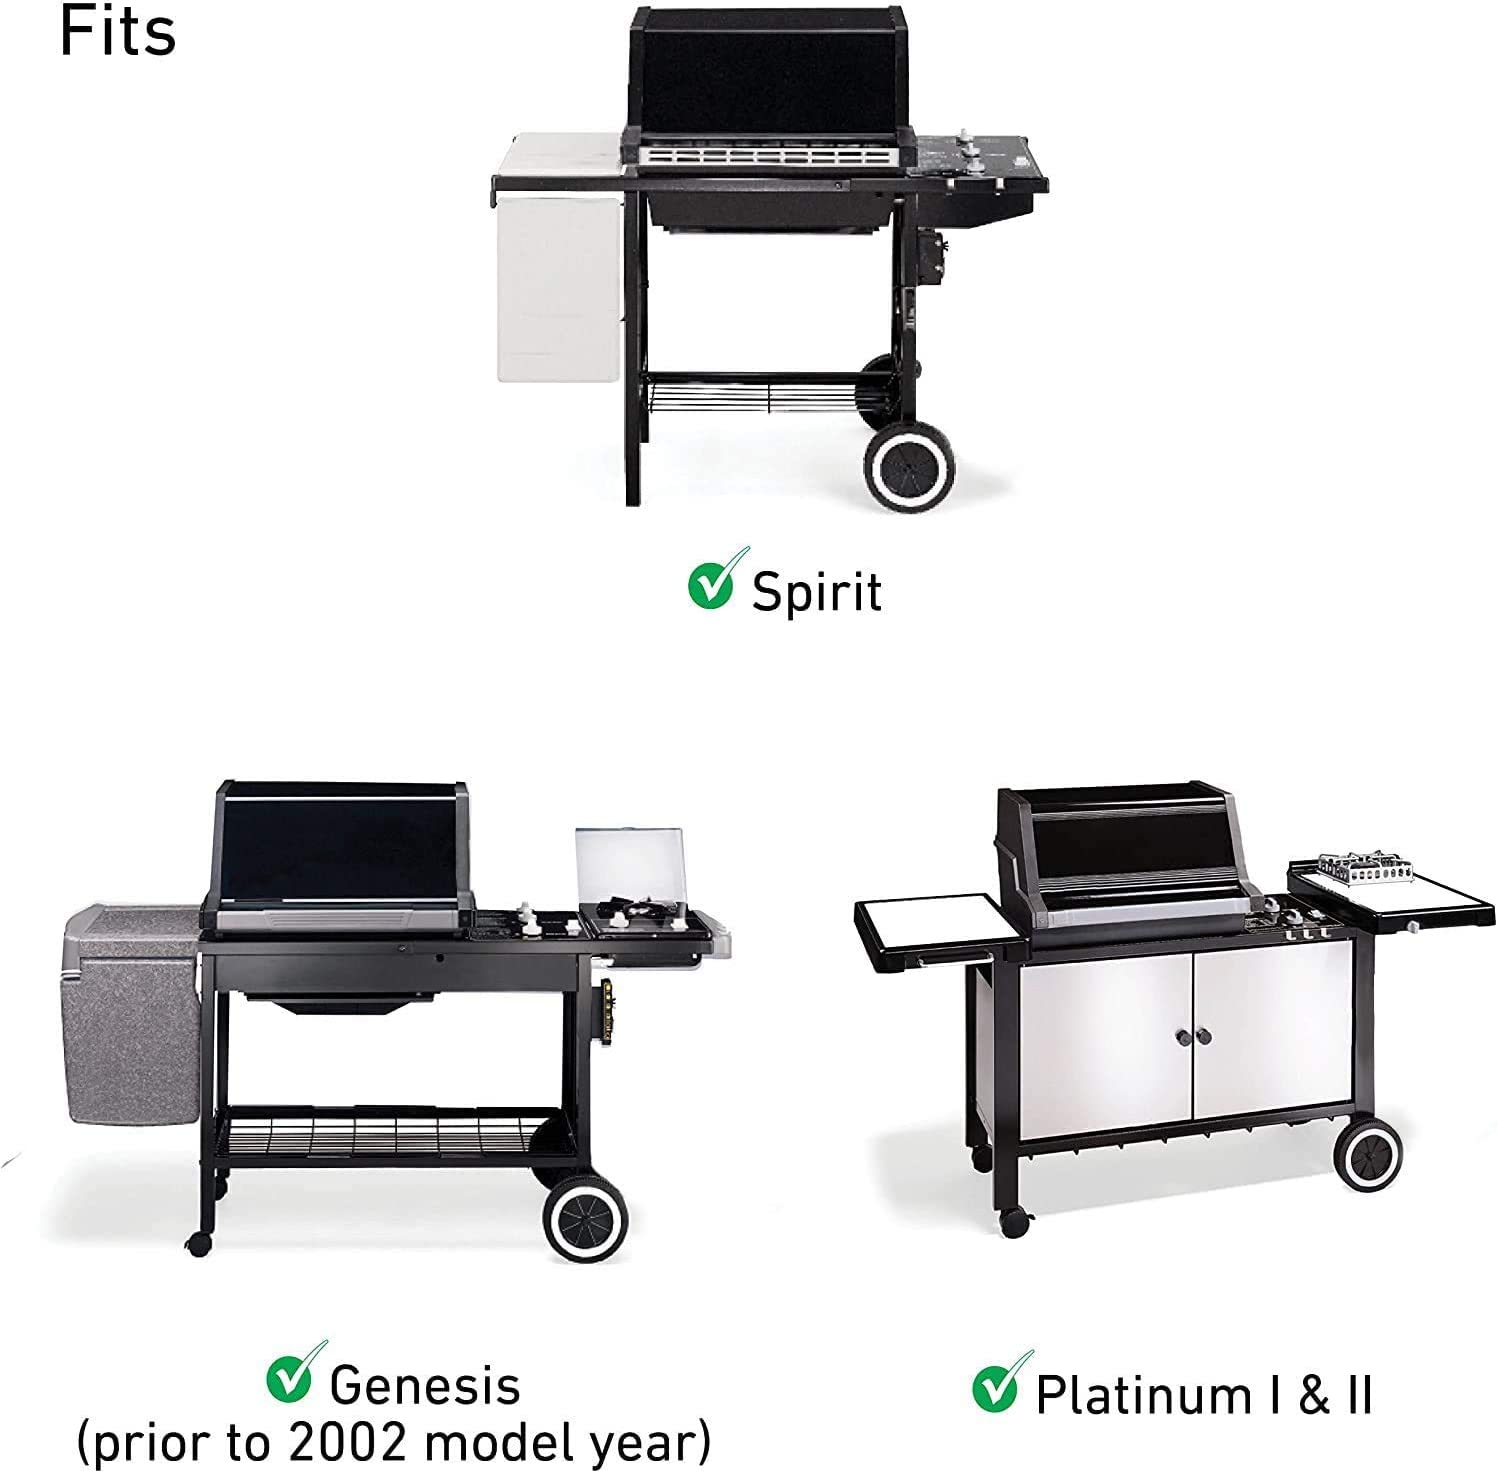 1000-5500 Spirit E210 Install Easily Durable Ignitor Replacement for Weber 7509 GASPRO 7509 Exact Igniter Kit for Weber Genesis E-310//320 Silver B//C 500 700 Grill with Side-Control